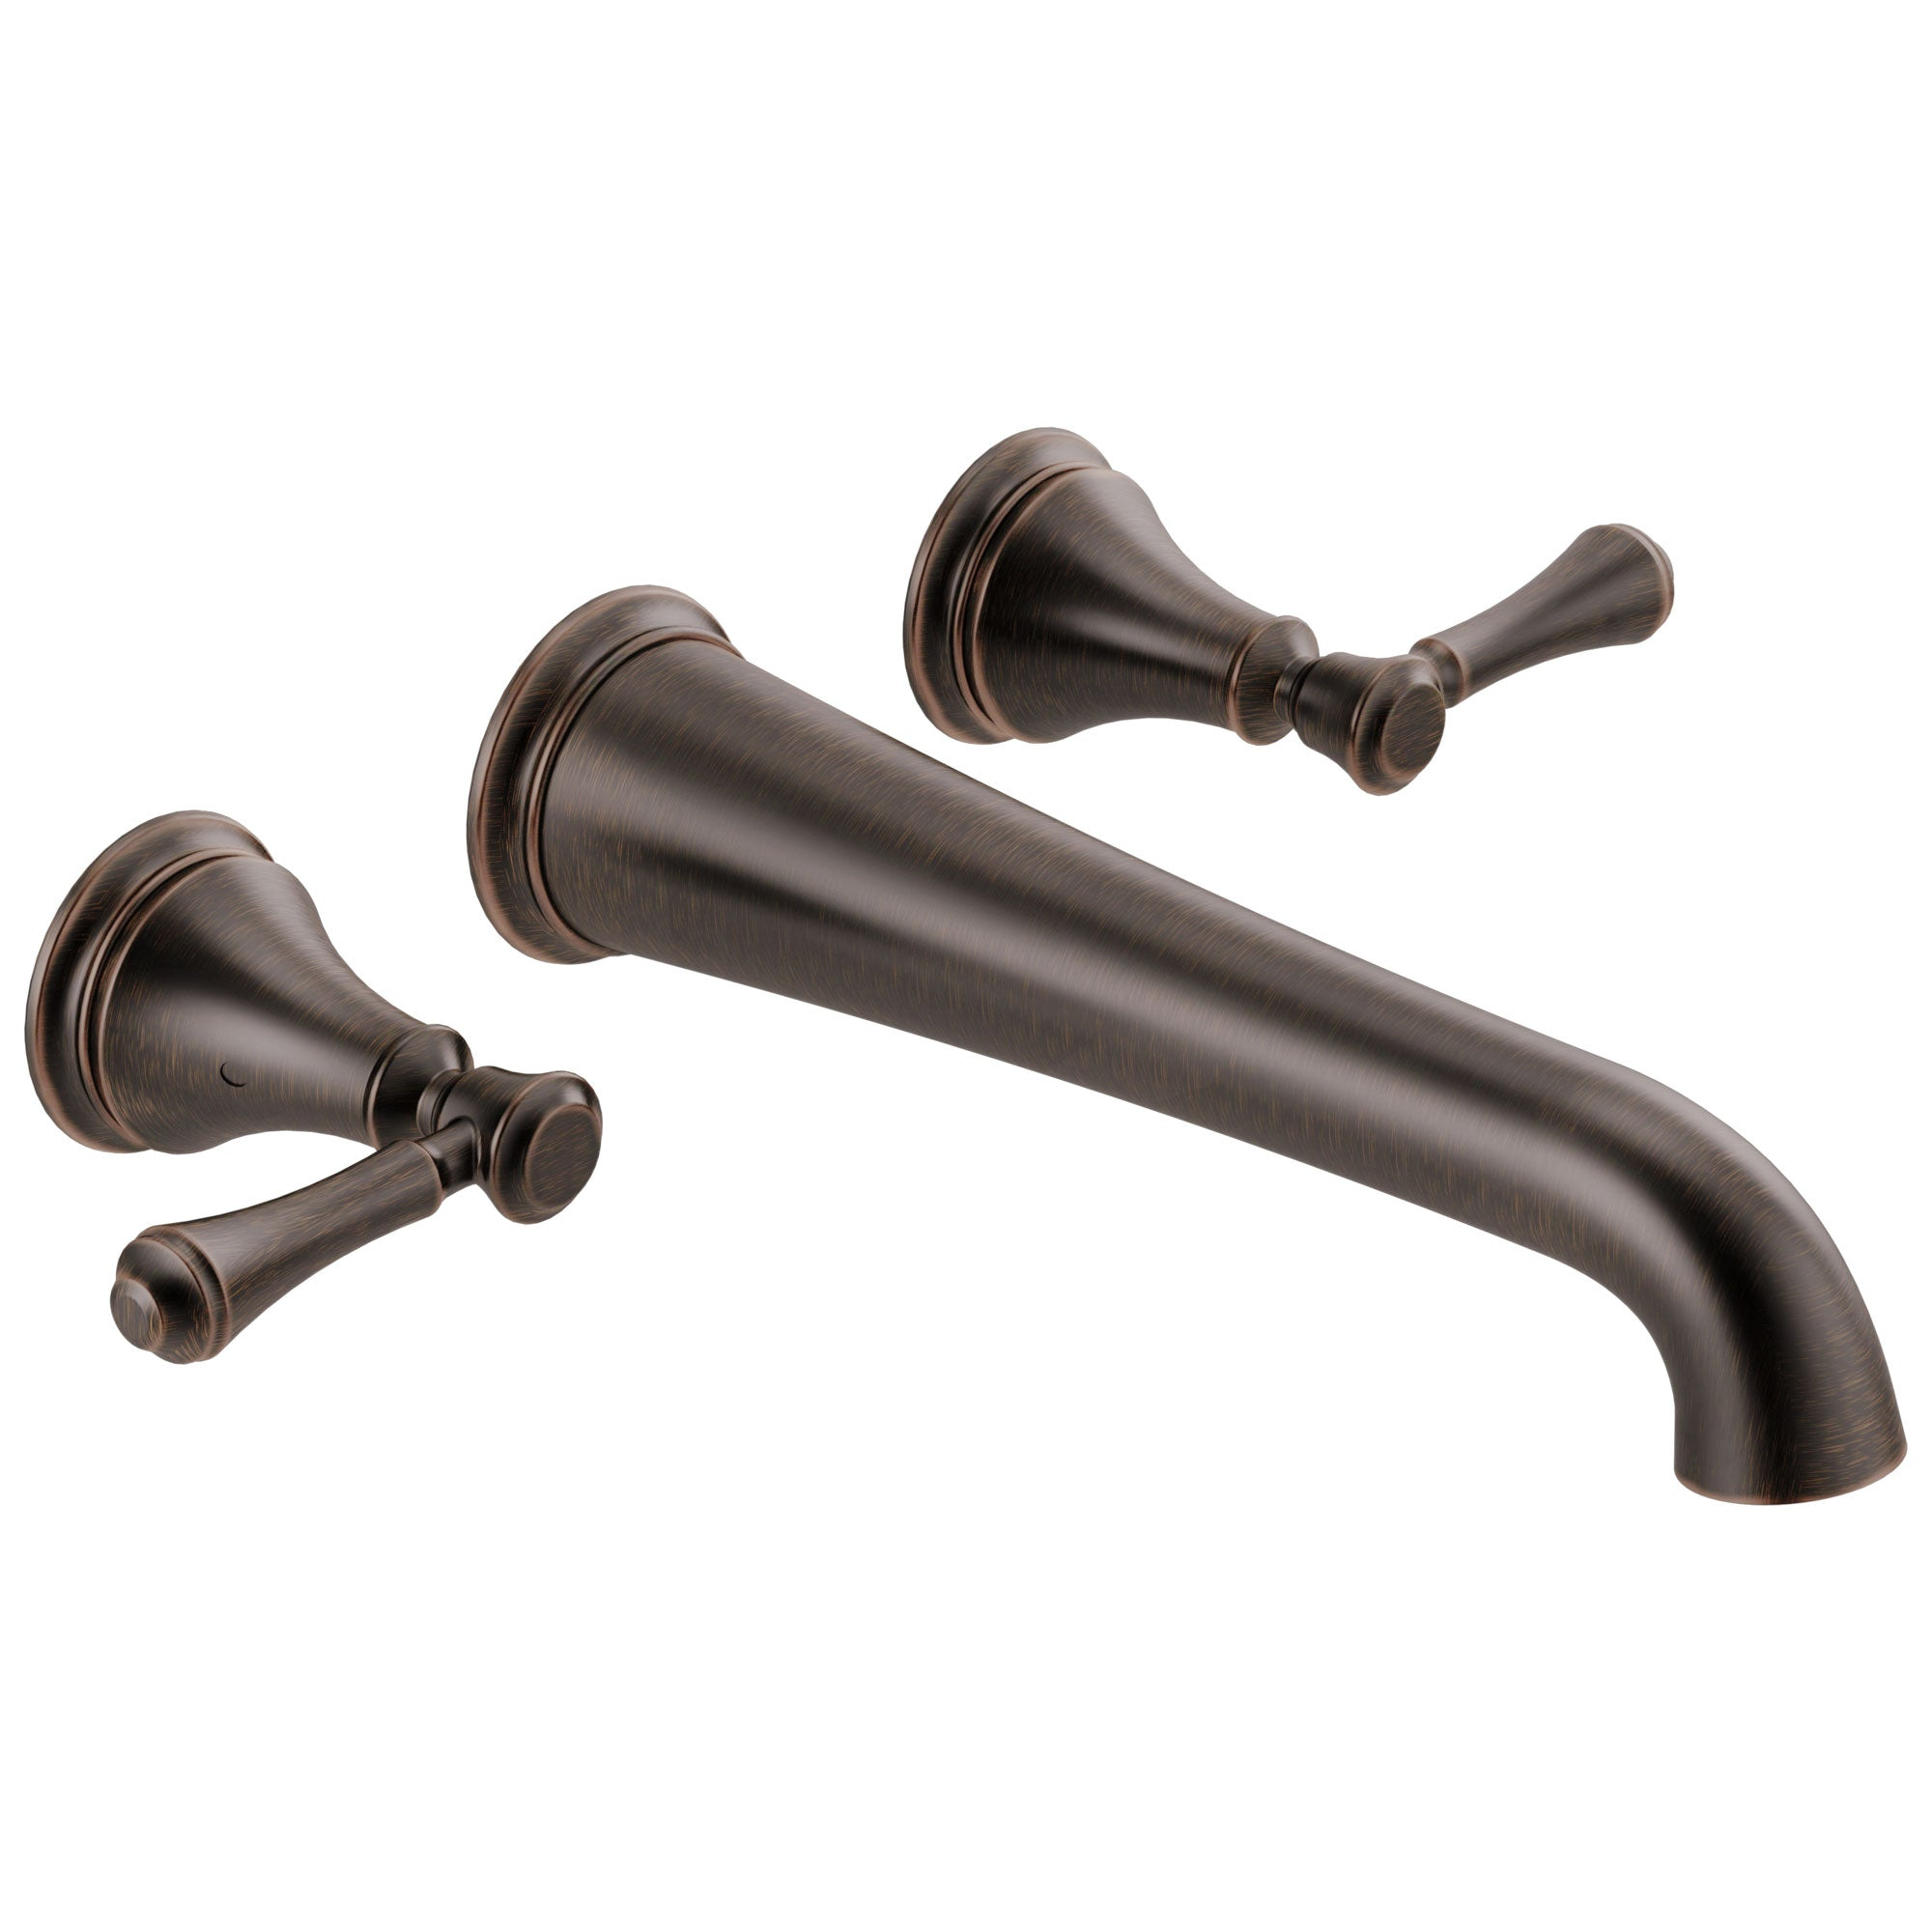 Delta Cassidy Venetian Bronze Finish 2 Handle Wall Mount Tub Filler Faucet Trim Kit (Requires Valve) DT5797RBWL